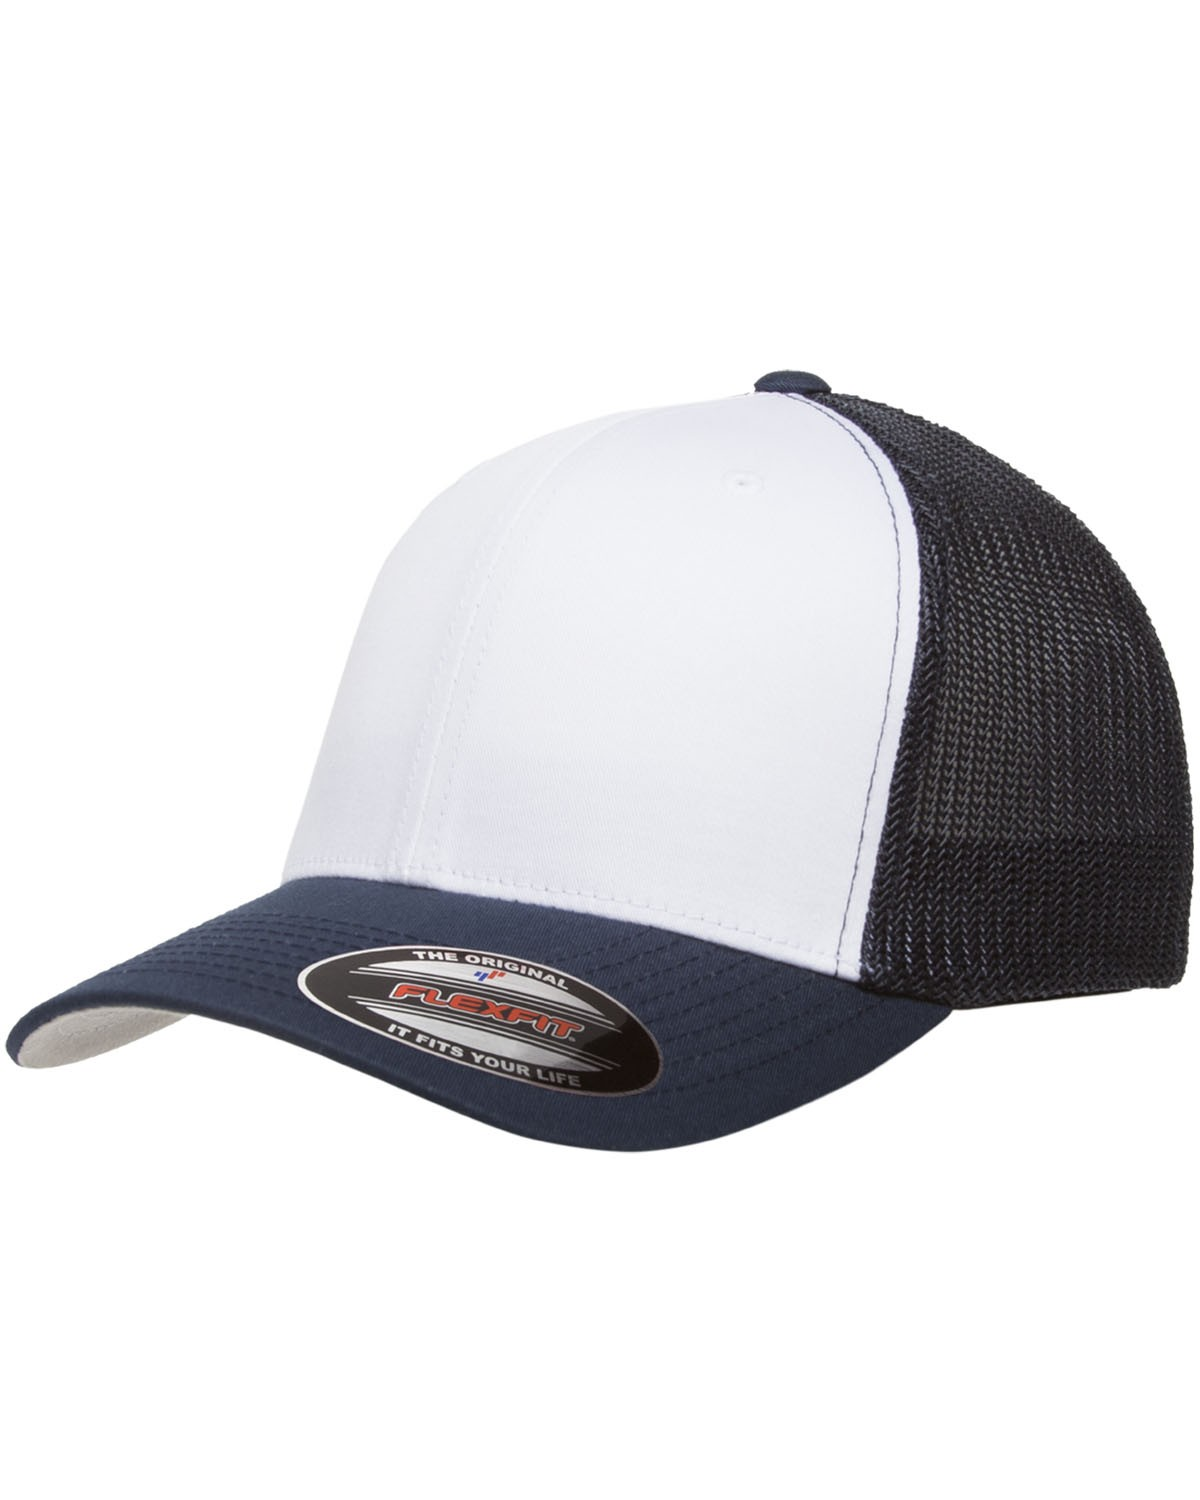 6511W Yupoong NAVY/WHT/NVY